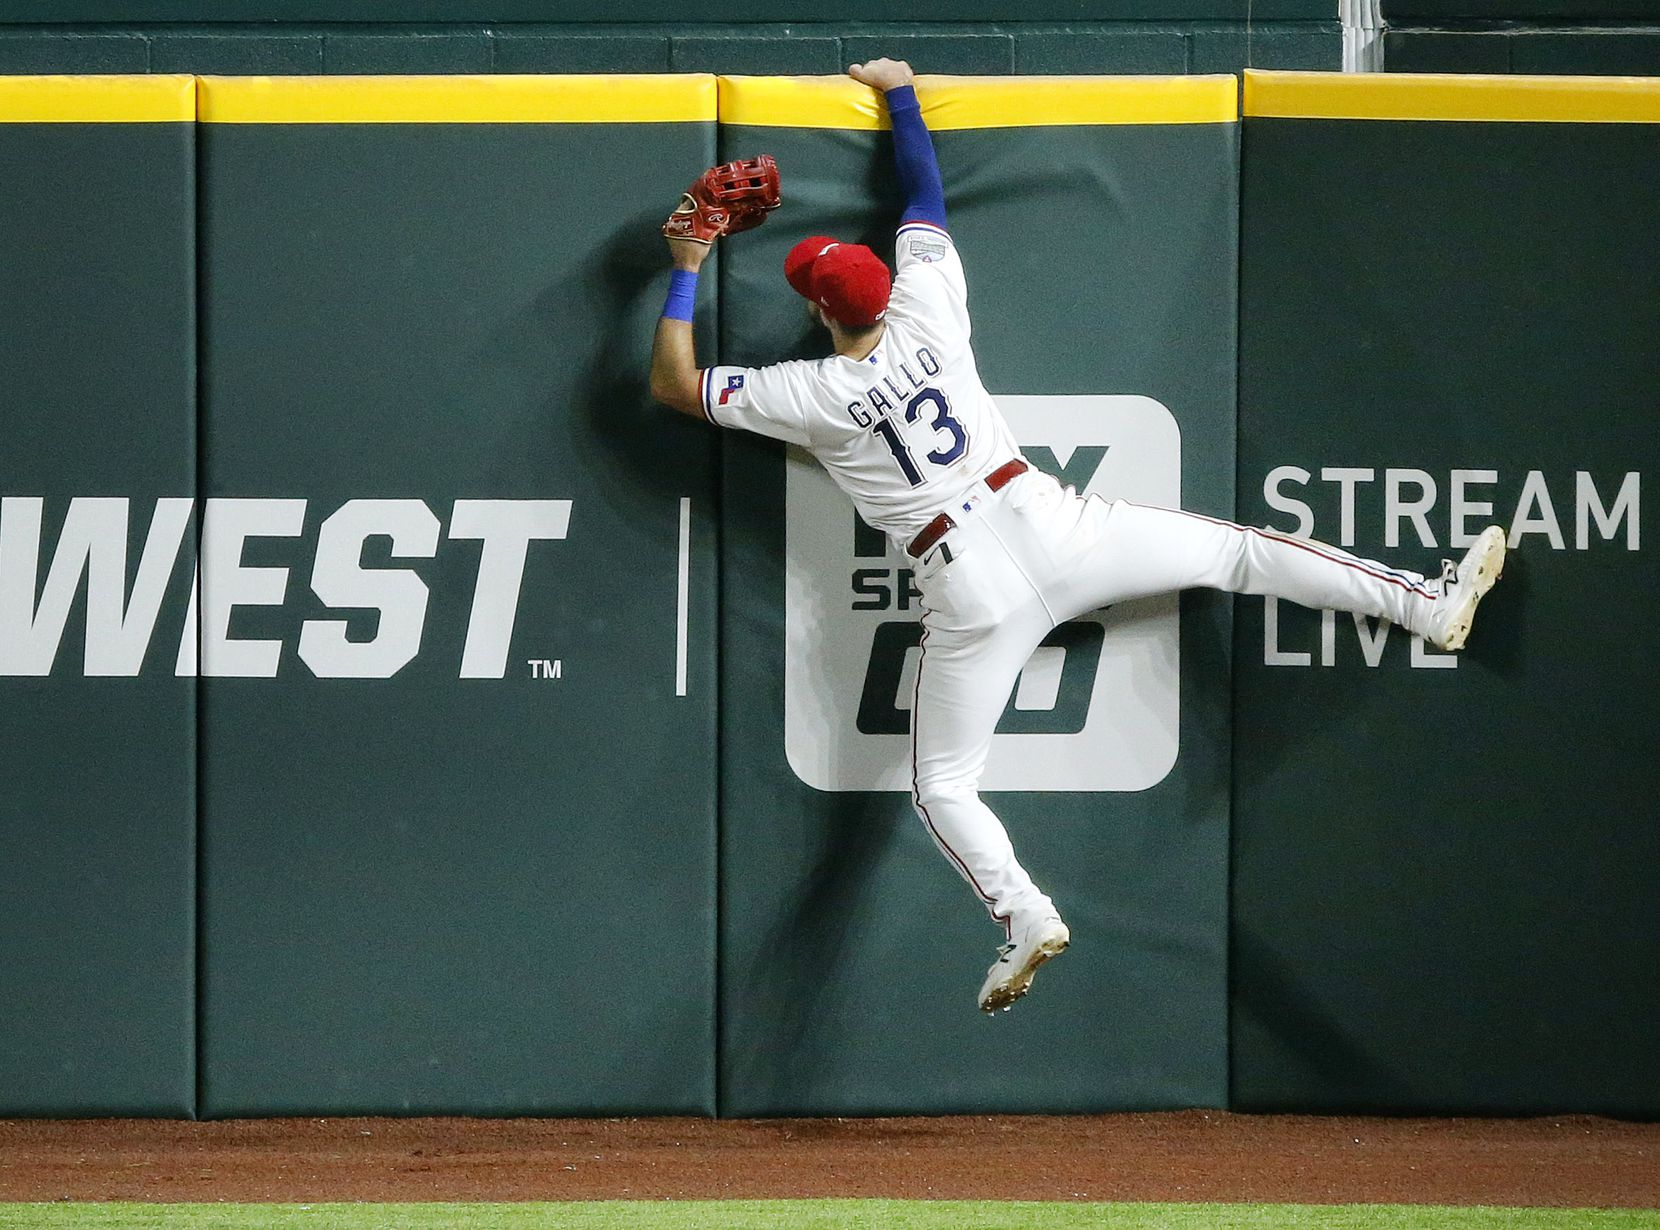 Texas Rangers right fielder Joey Gallo (13) hangs on the wall after attempting to catch Seattle Mariners batter Kyle Seager's grand slam home run in the sixth inning at Globe Life Field in Arlington, Monday, August 10, 2020. (Tom Fox/The Dallas Morning News)